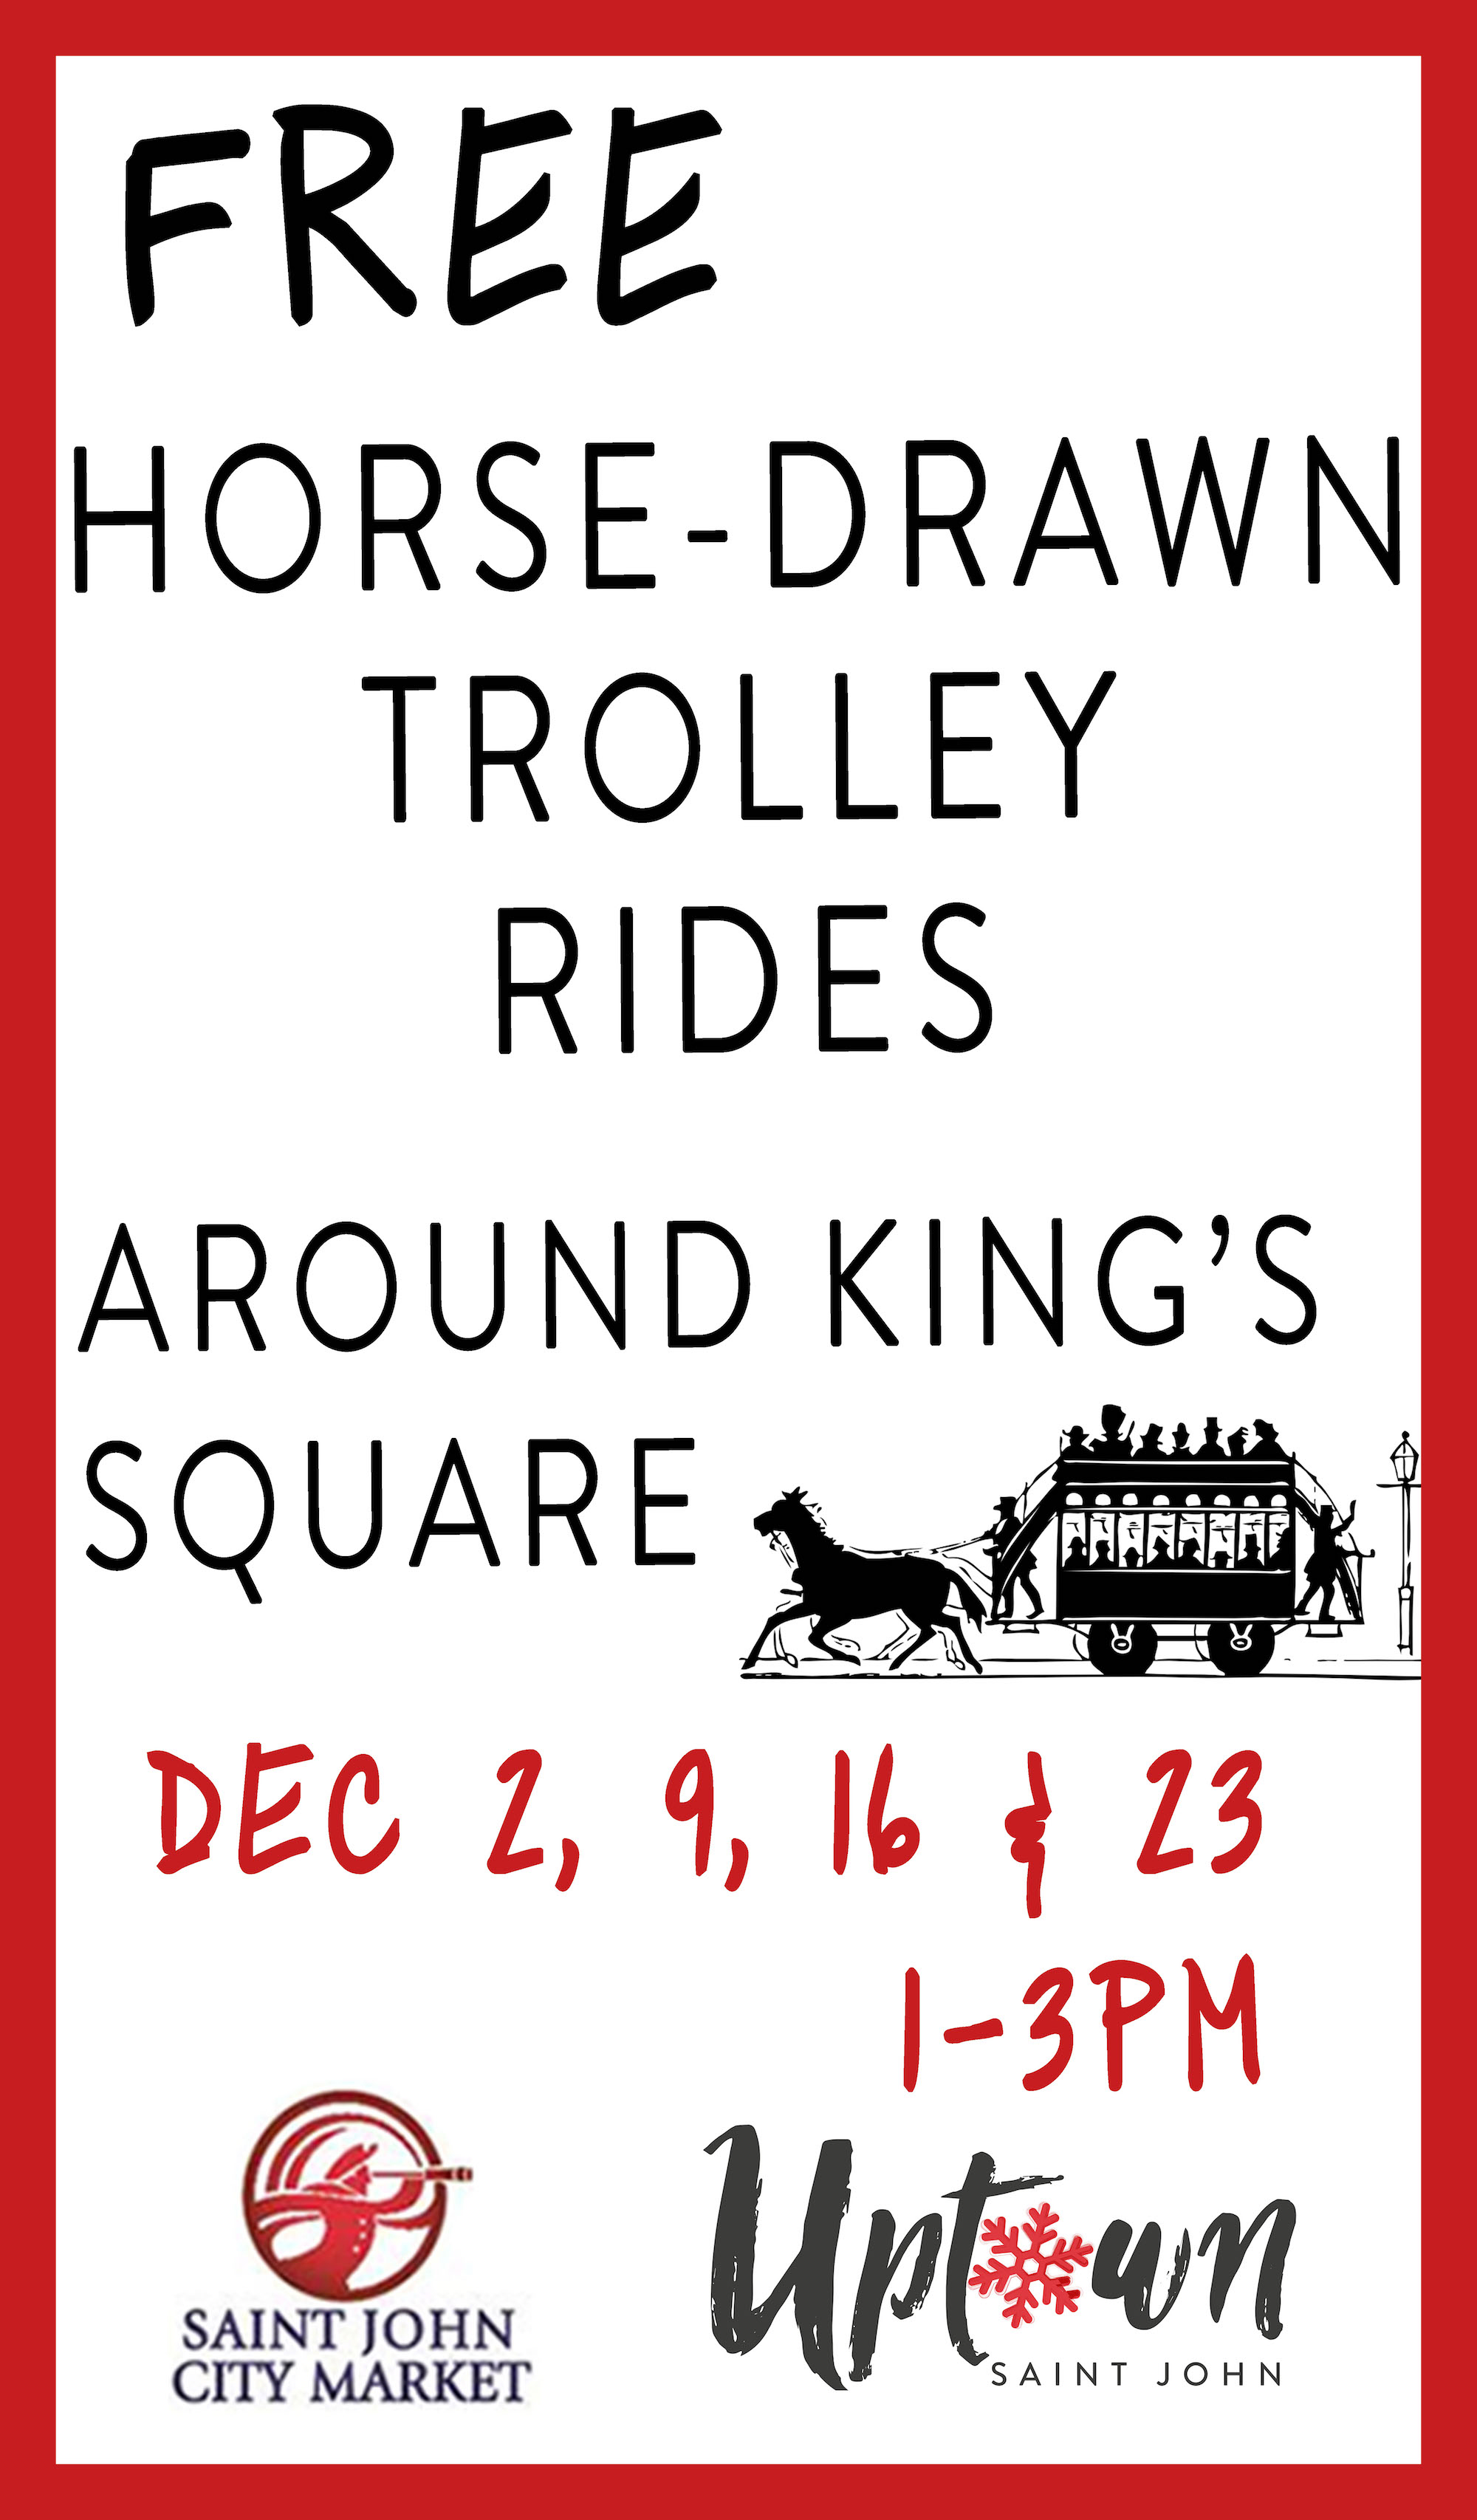 FREE HORSE-DRAWN TROLLEY RIDES AROUND KING'S SQUARE